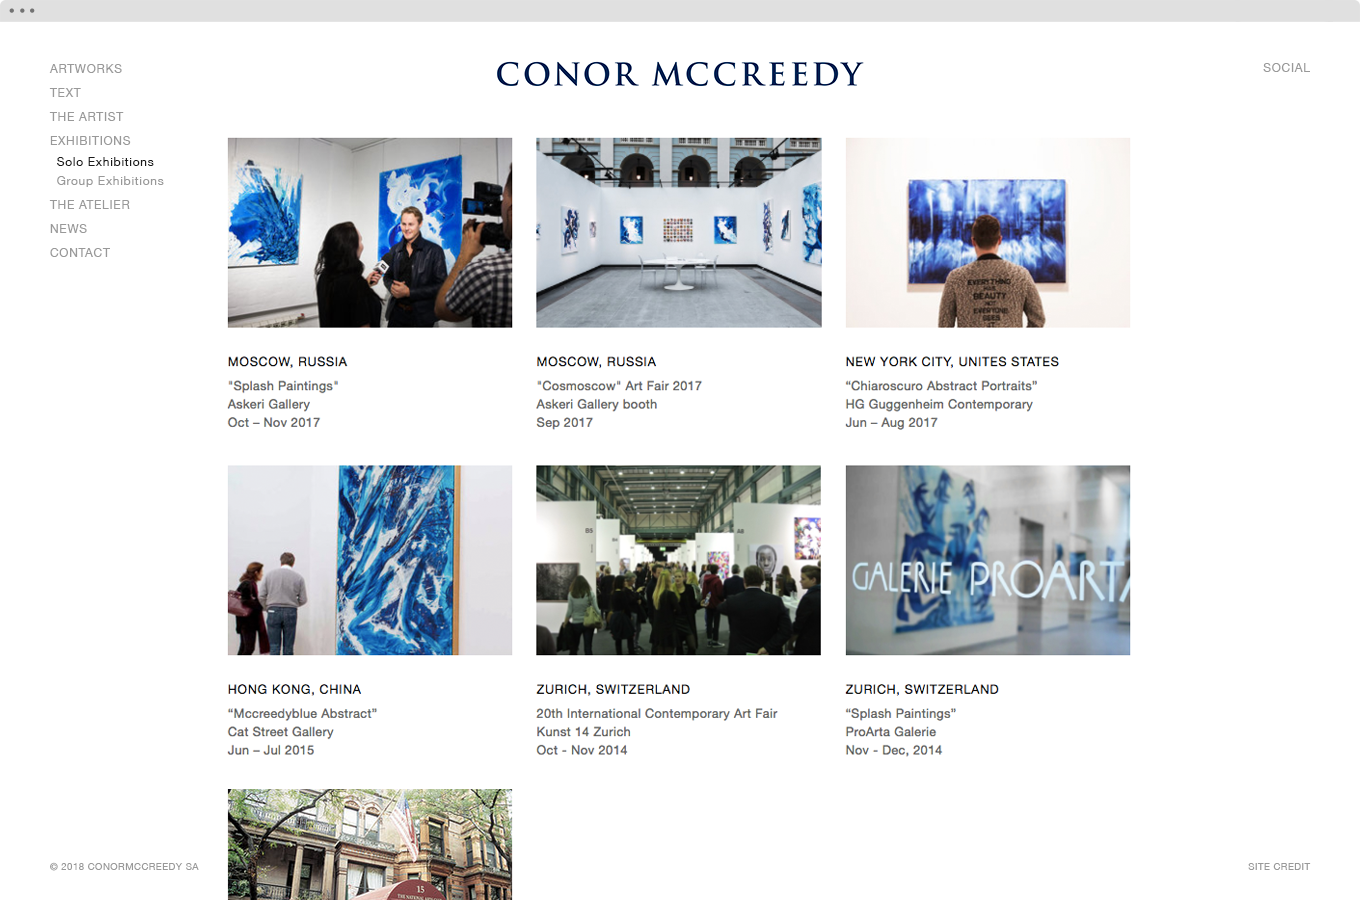 ConorMccreedy-Exhibitions.png